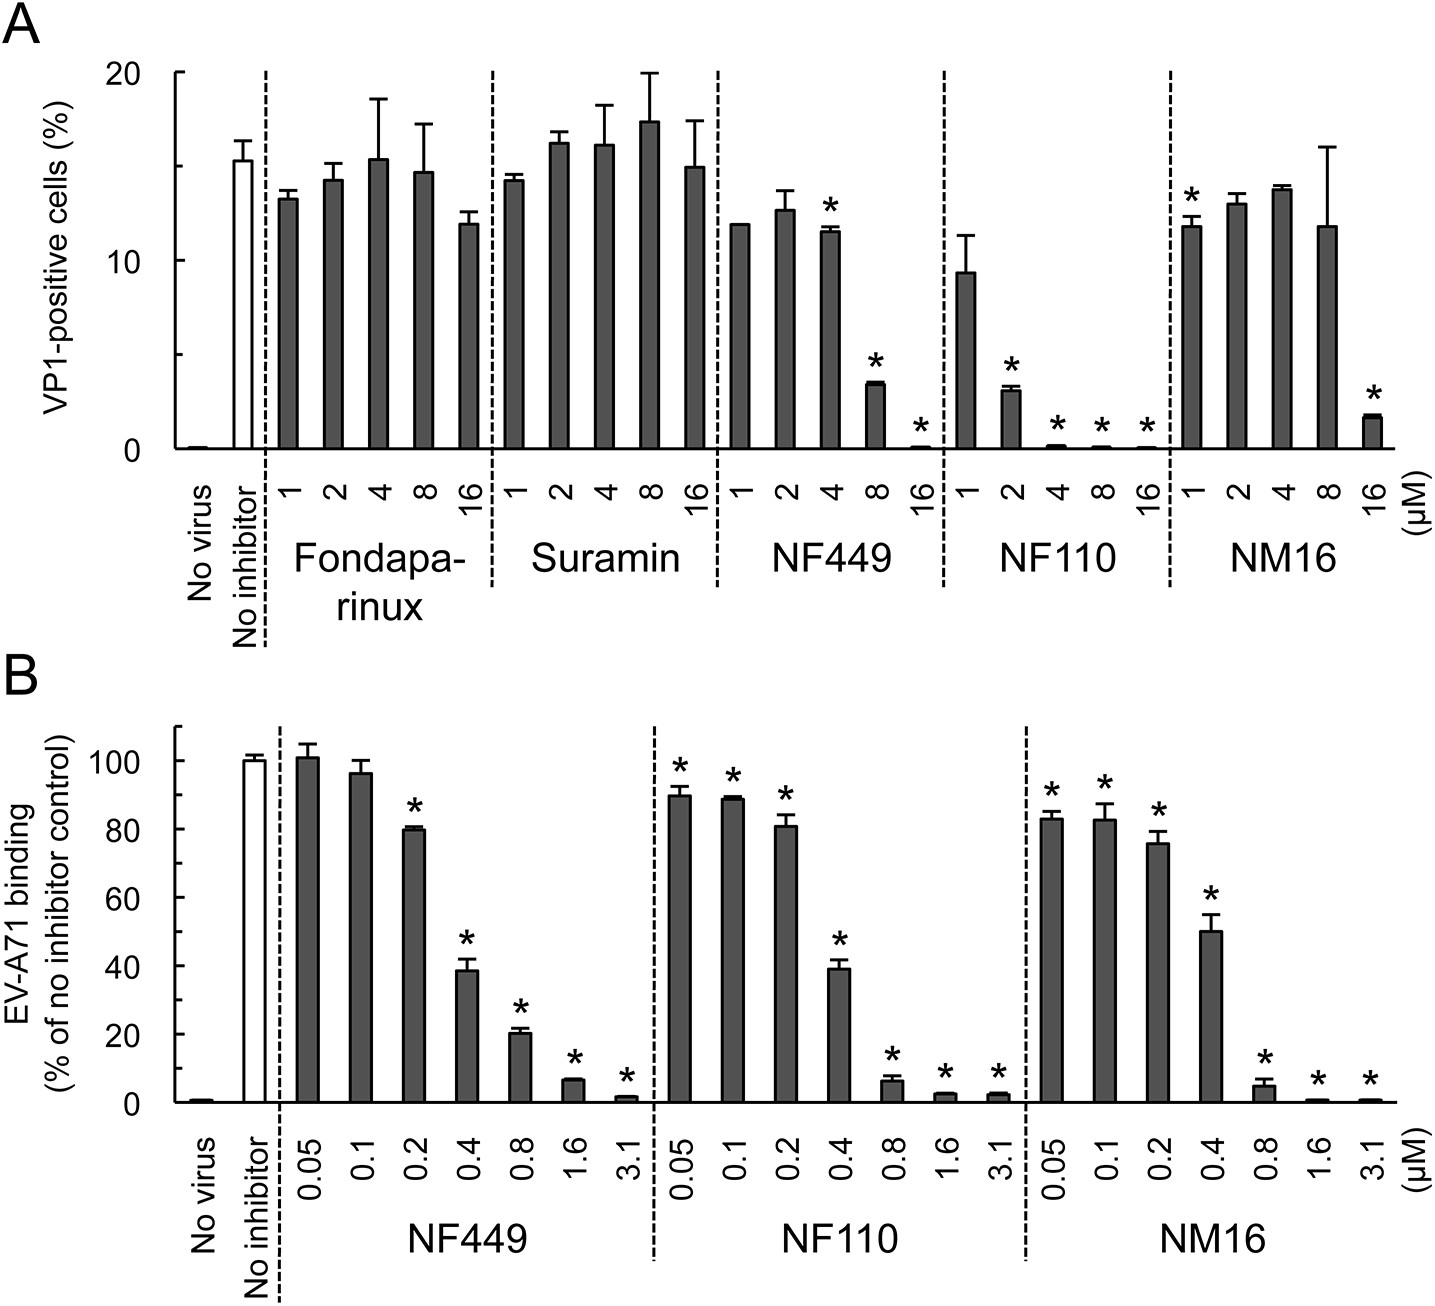 NF449, NF110, and NM16 inhibit virus interactions with Jurkat cells.